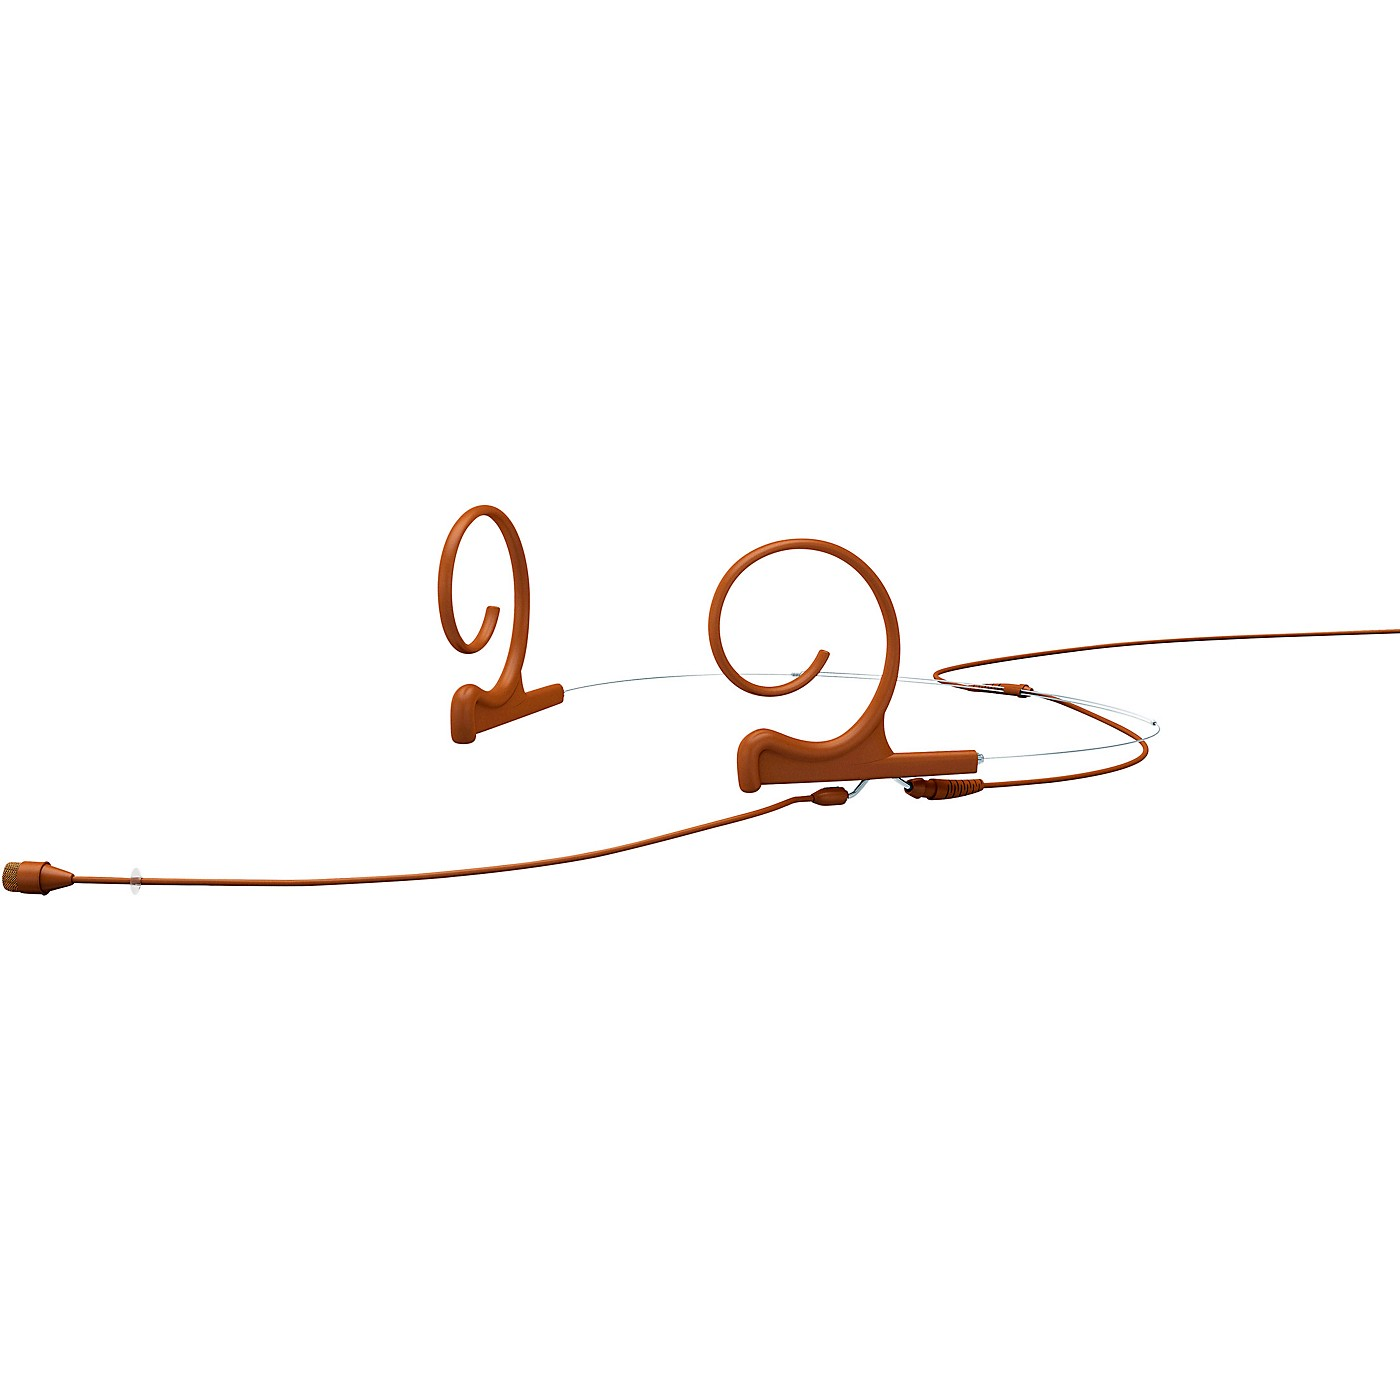 DPA Microphones d:fine FIO66 Omnidirectional Headset Microphone—Dual Ear, 110mm Boom, Brown thumbnail